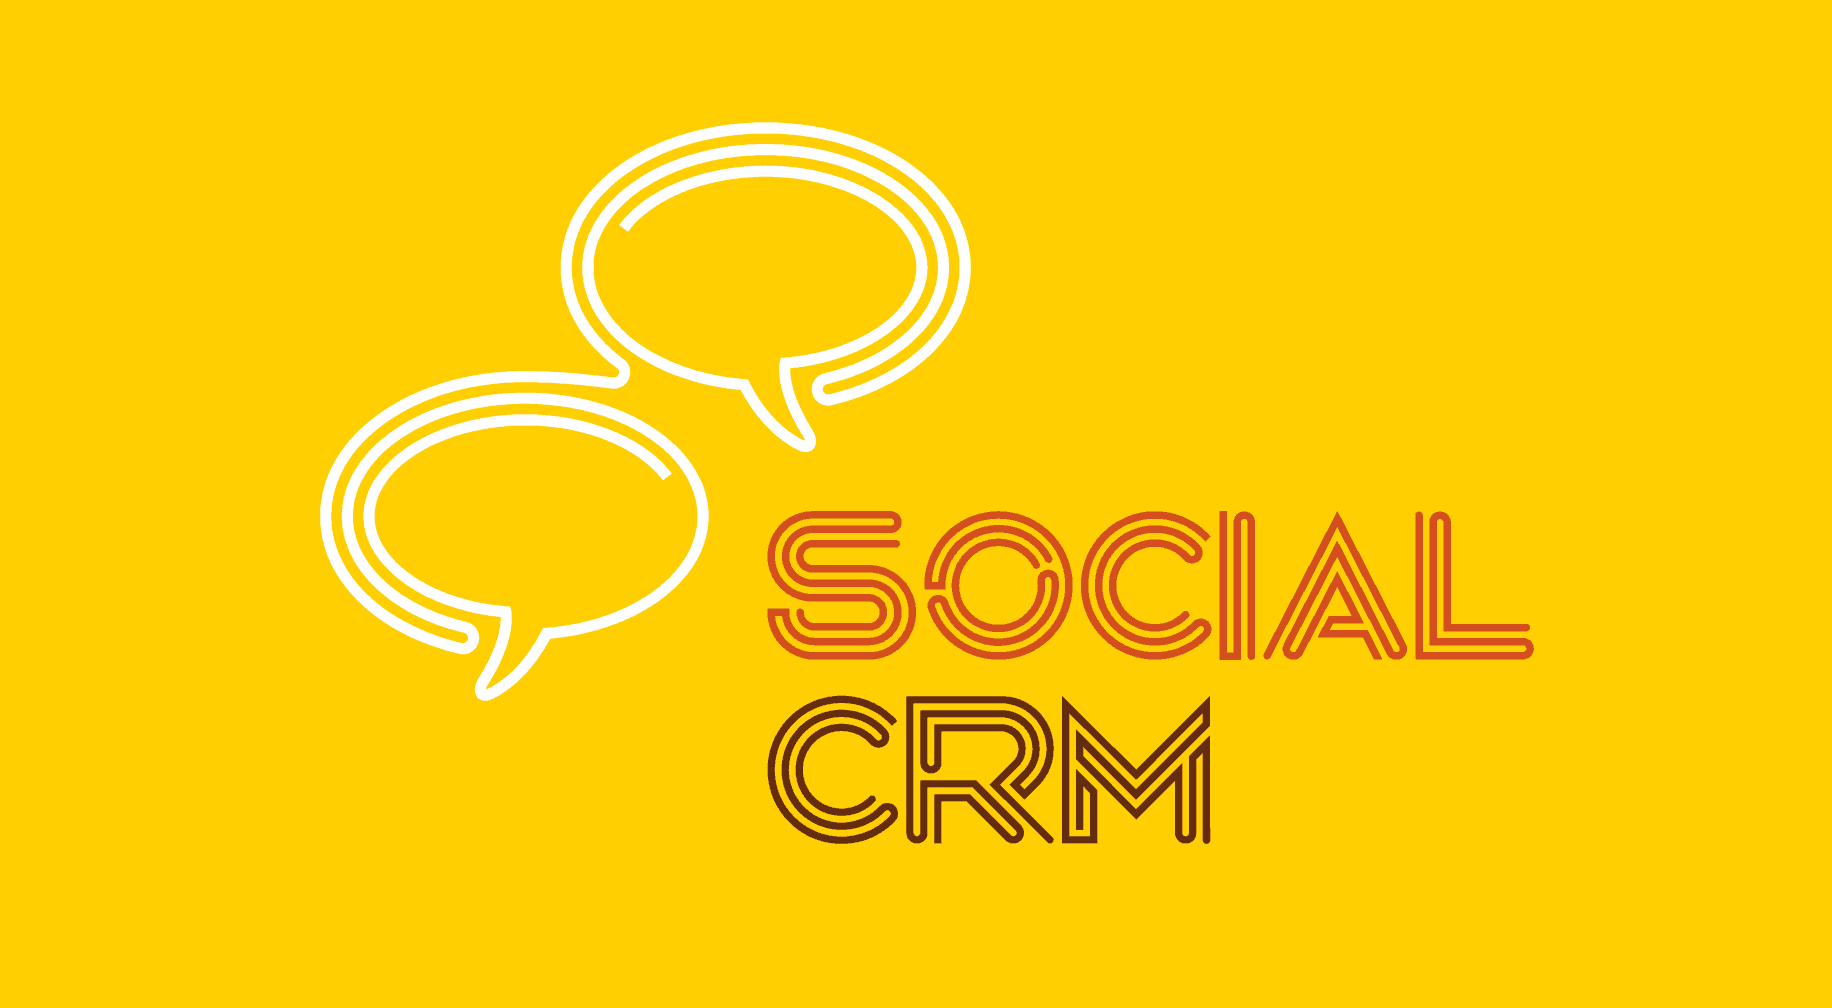 social-crm-by-ssc